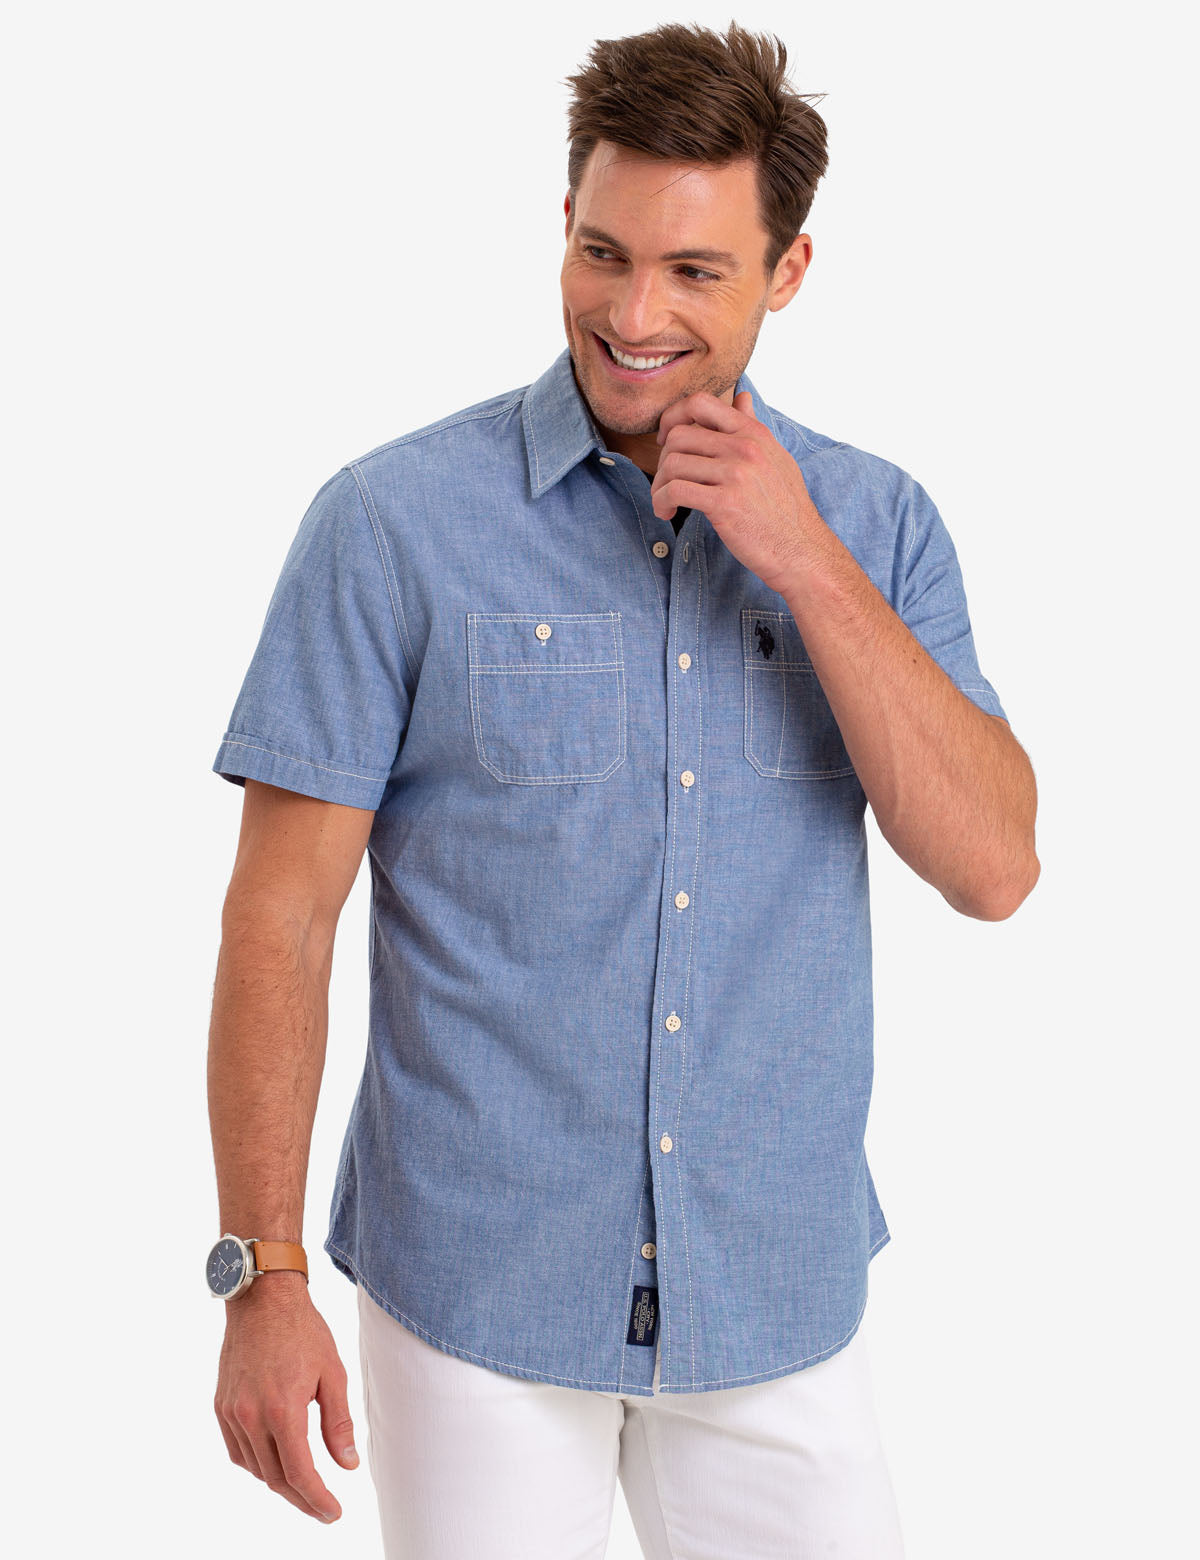 TWO POCKET UTILITY SHORT SLEEVE SHIRT - U.S. Polo Assn.